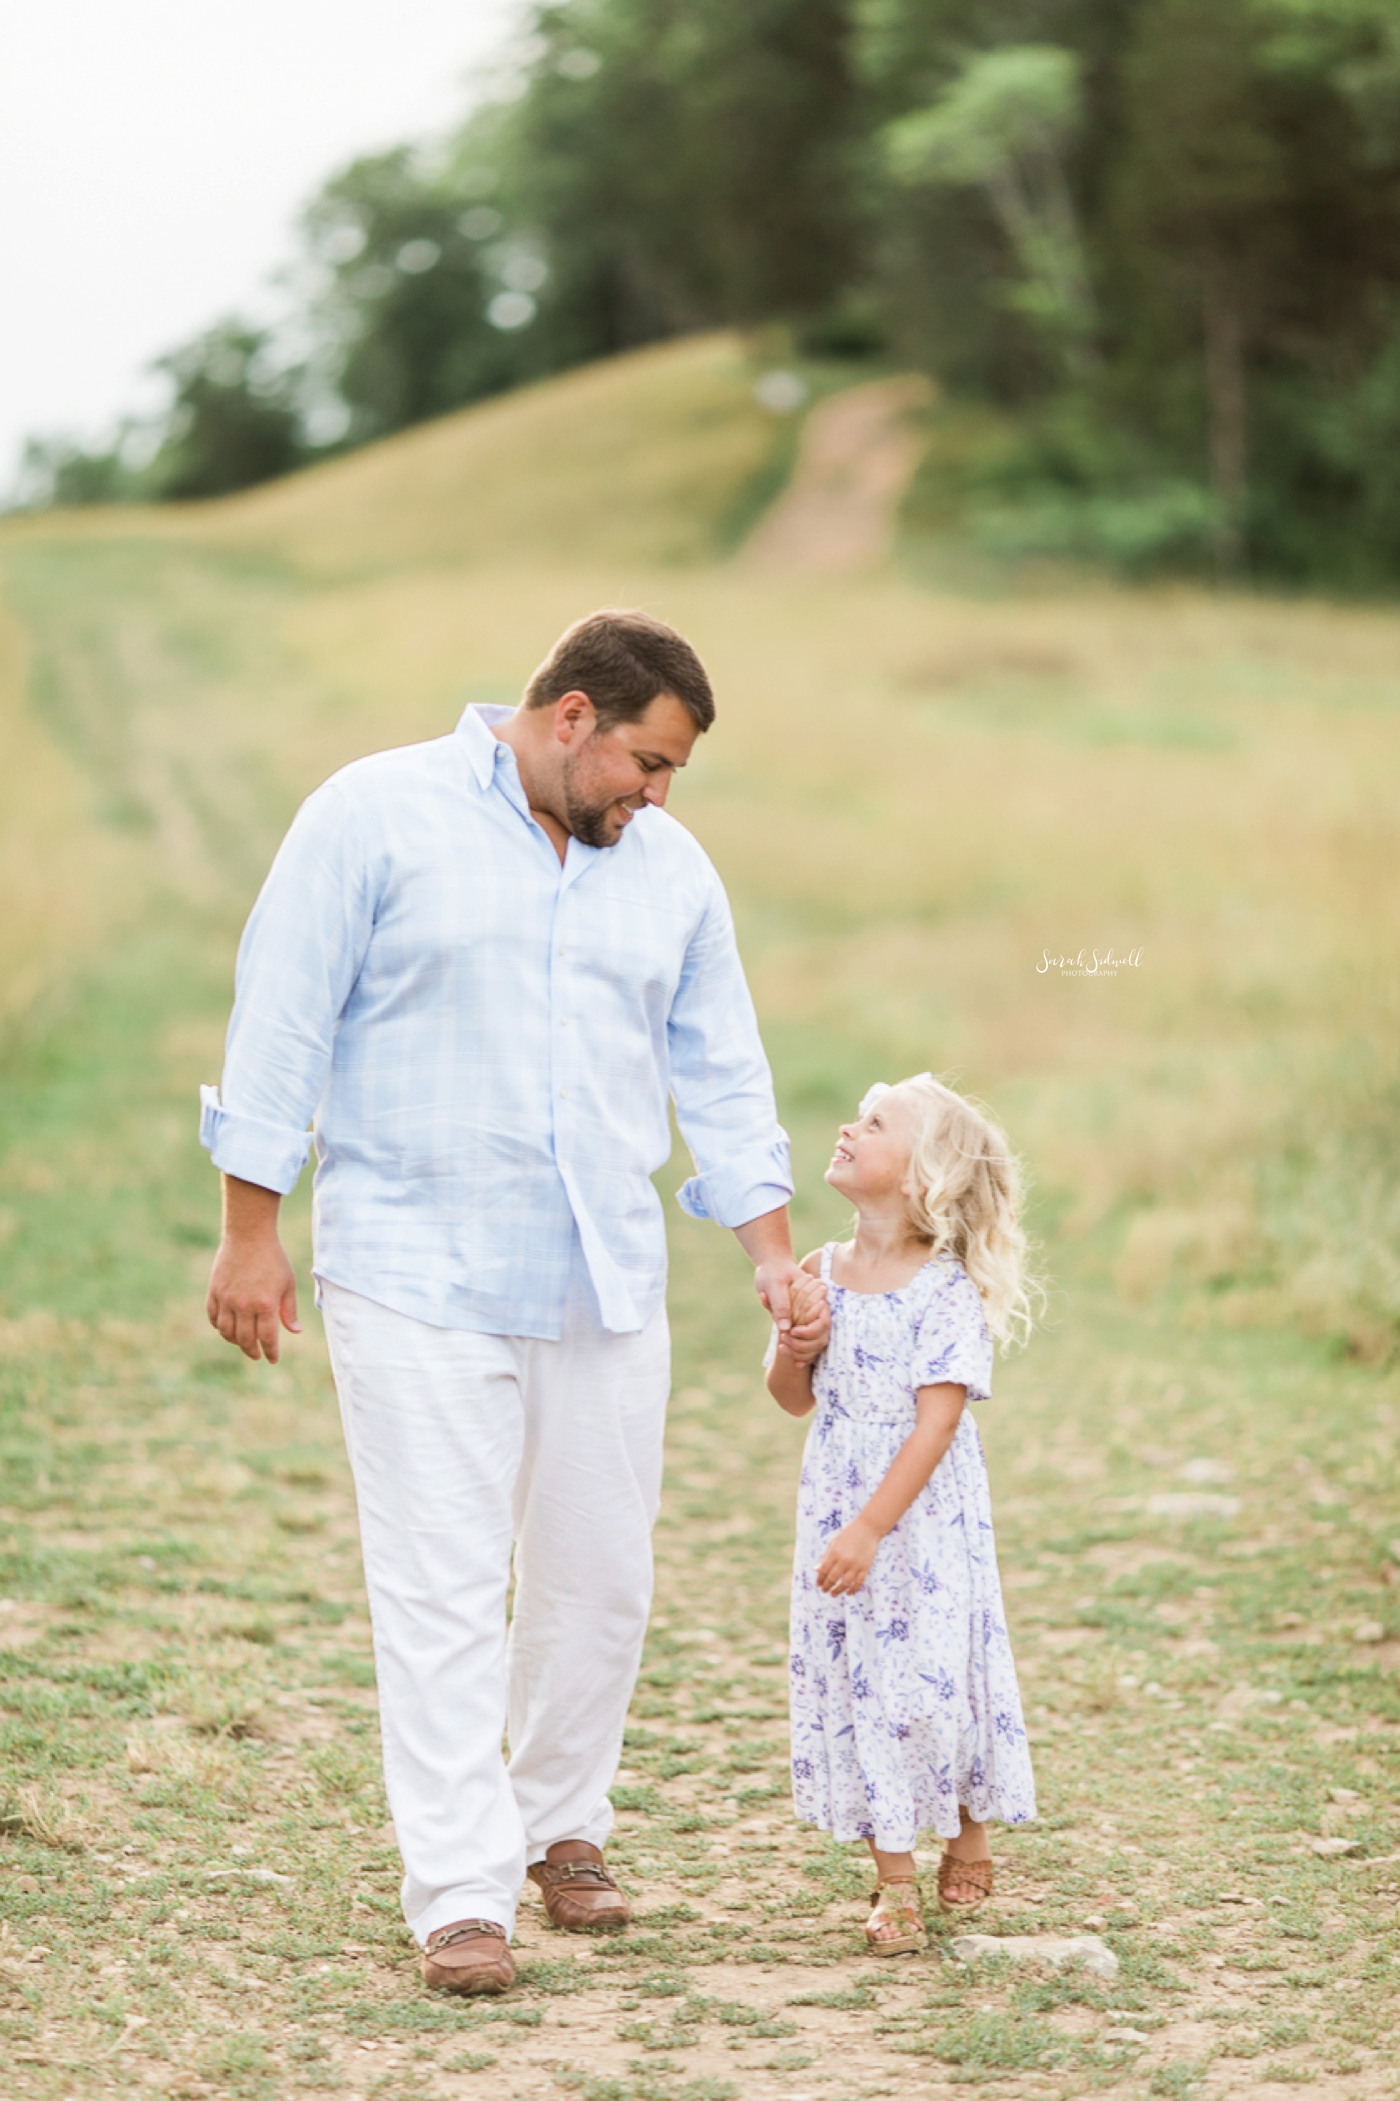 A dad walks with his young daughter.